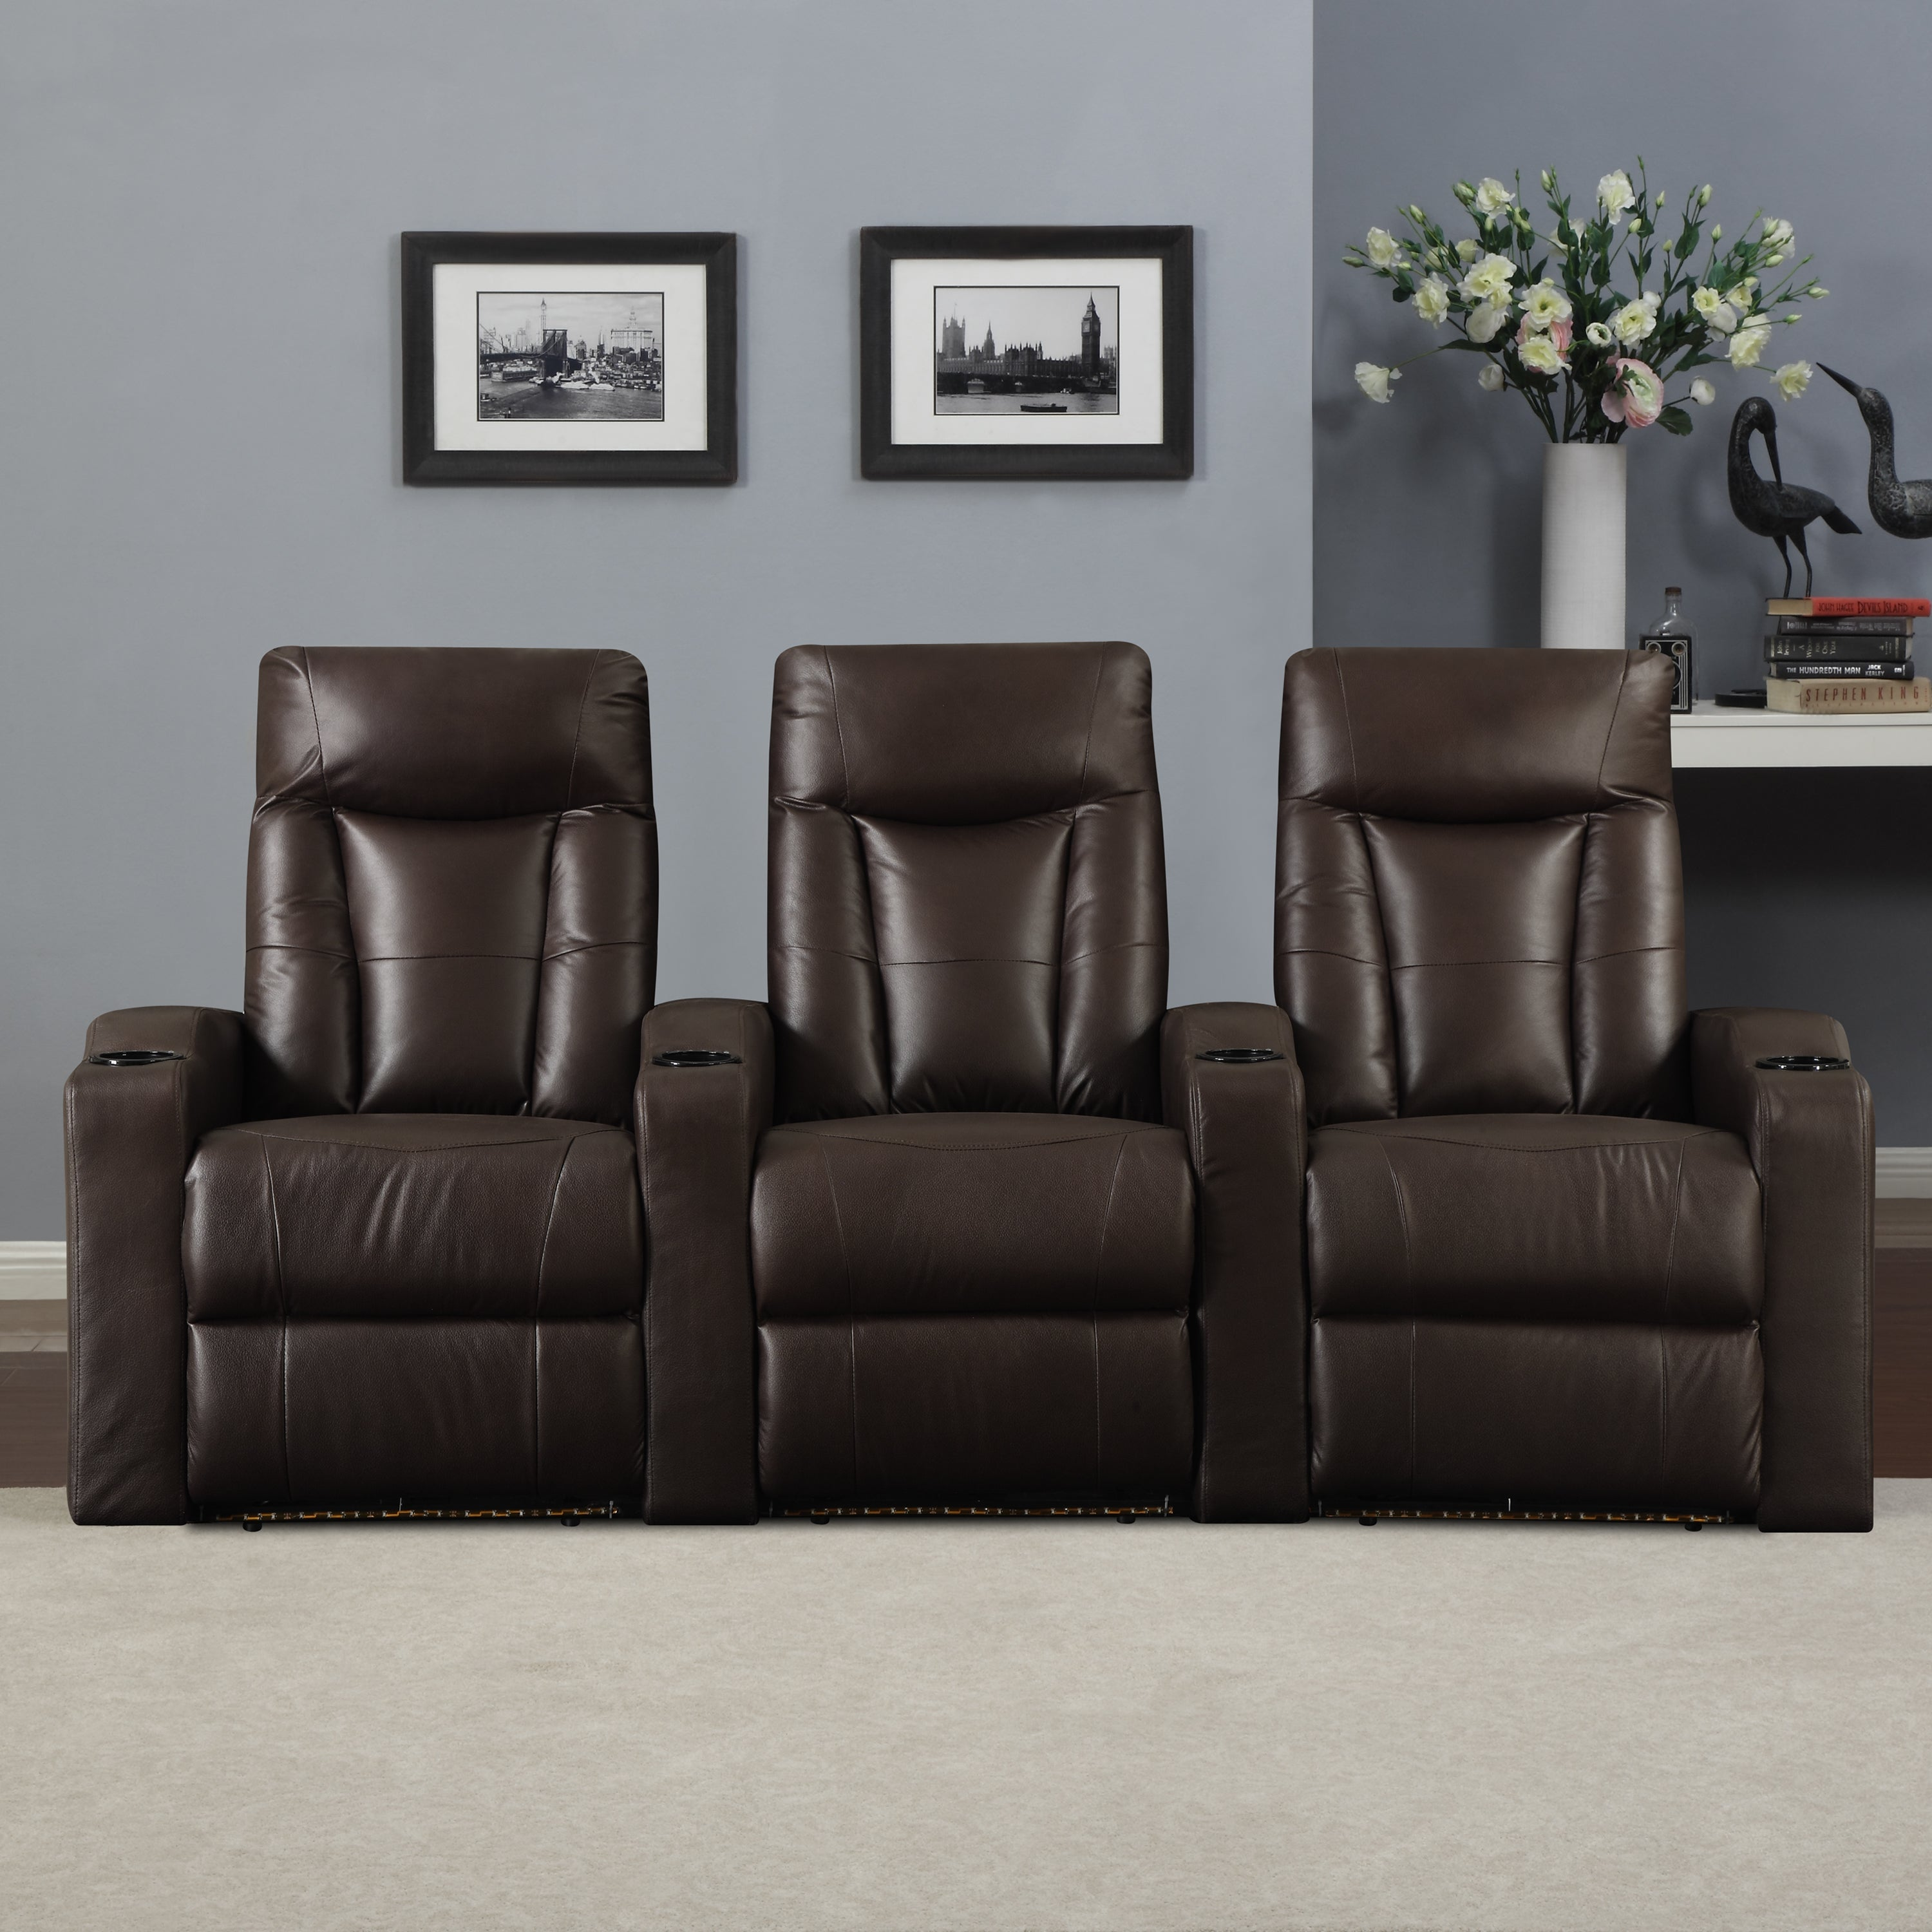 Portfolio ProLounger Home Theater Brown Renu Leather 3 Piece Wall Hugger Recliner Chair Set at Sears.com